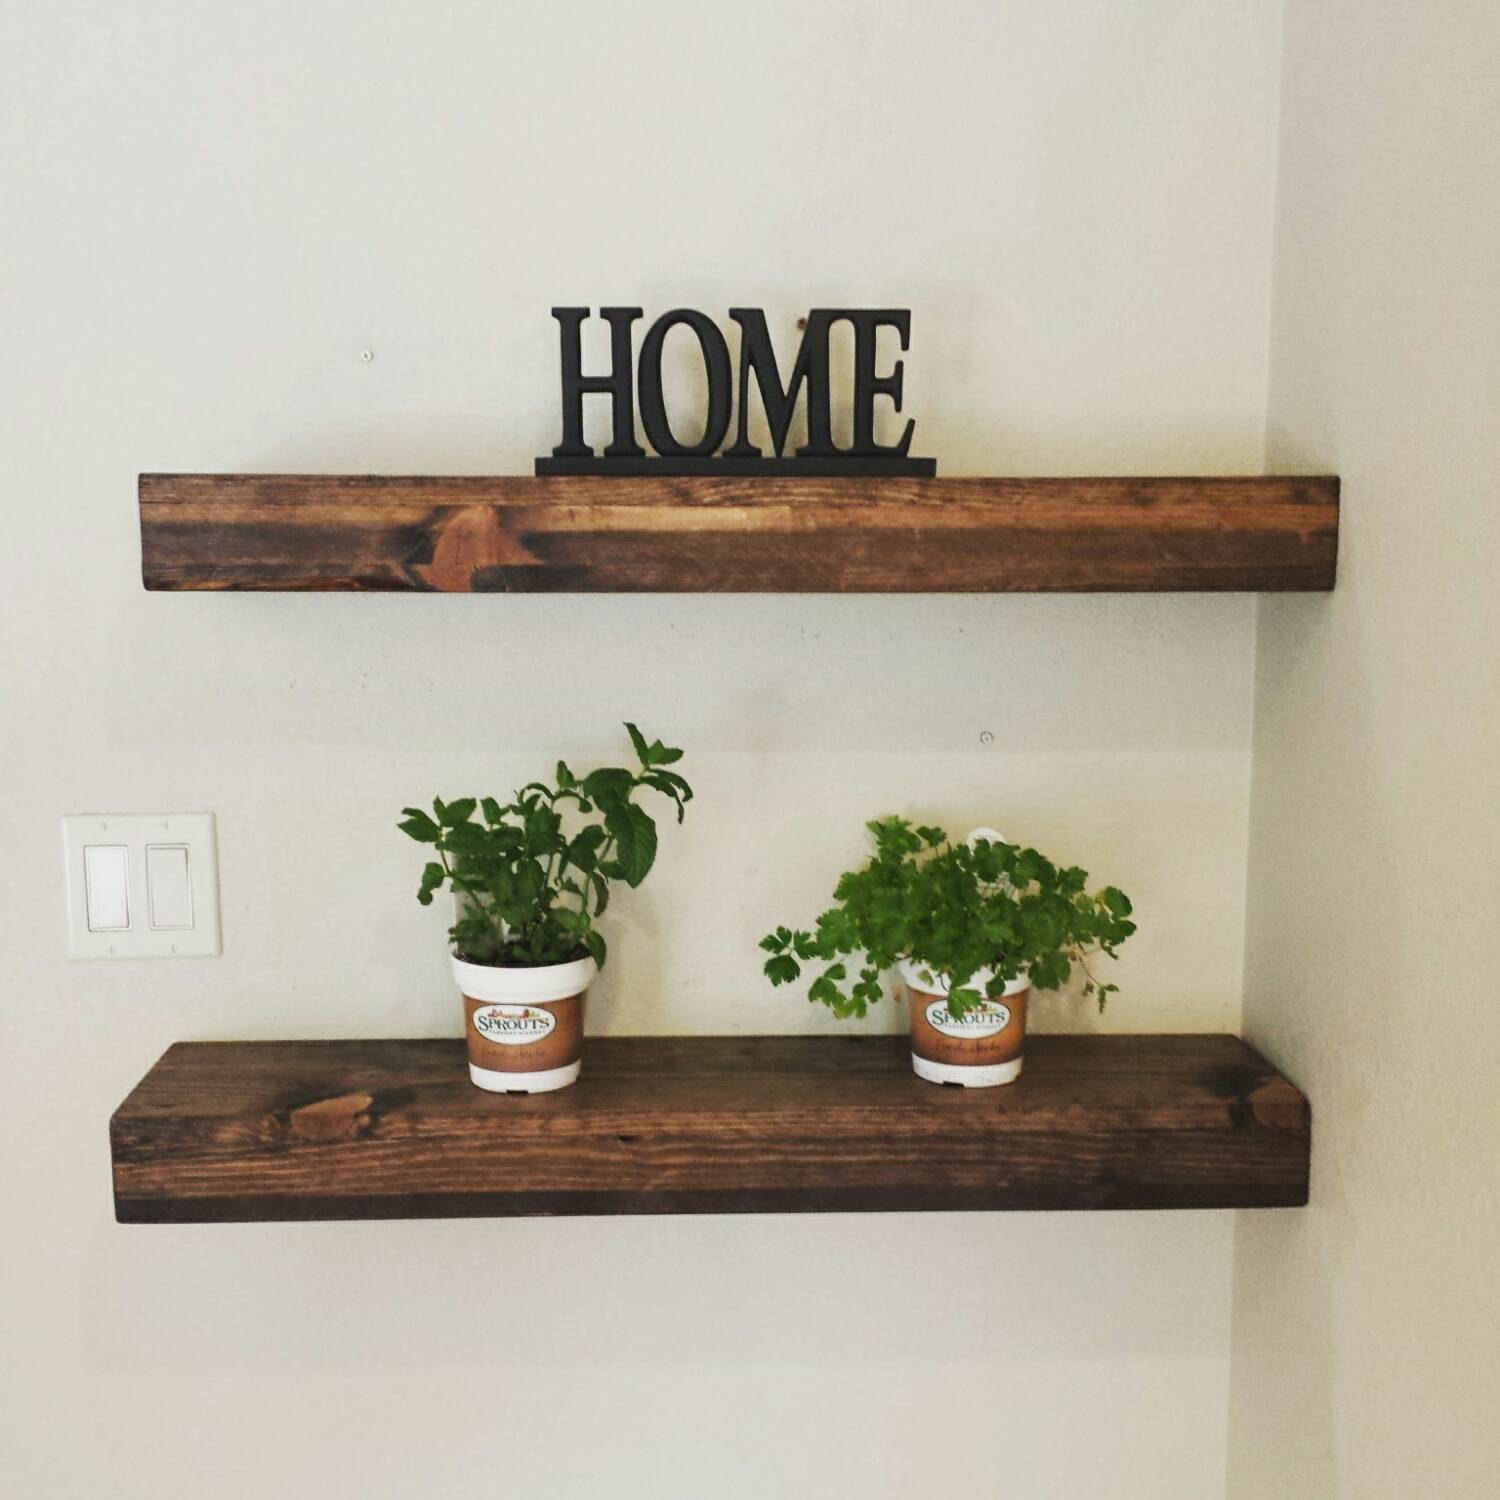 handmade rustic and reclaimed wood floating shelves mantel etsy fullxfull for electronics custom garage shelving storage unit screwfix curtain pole modern wall mounted desk